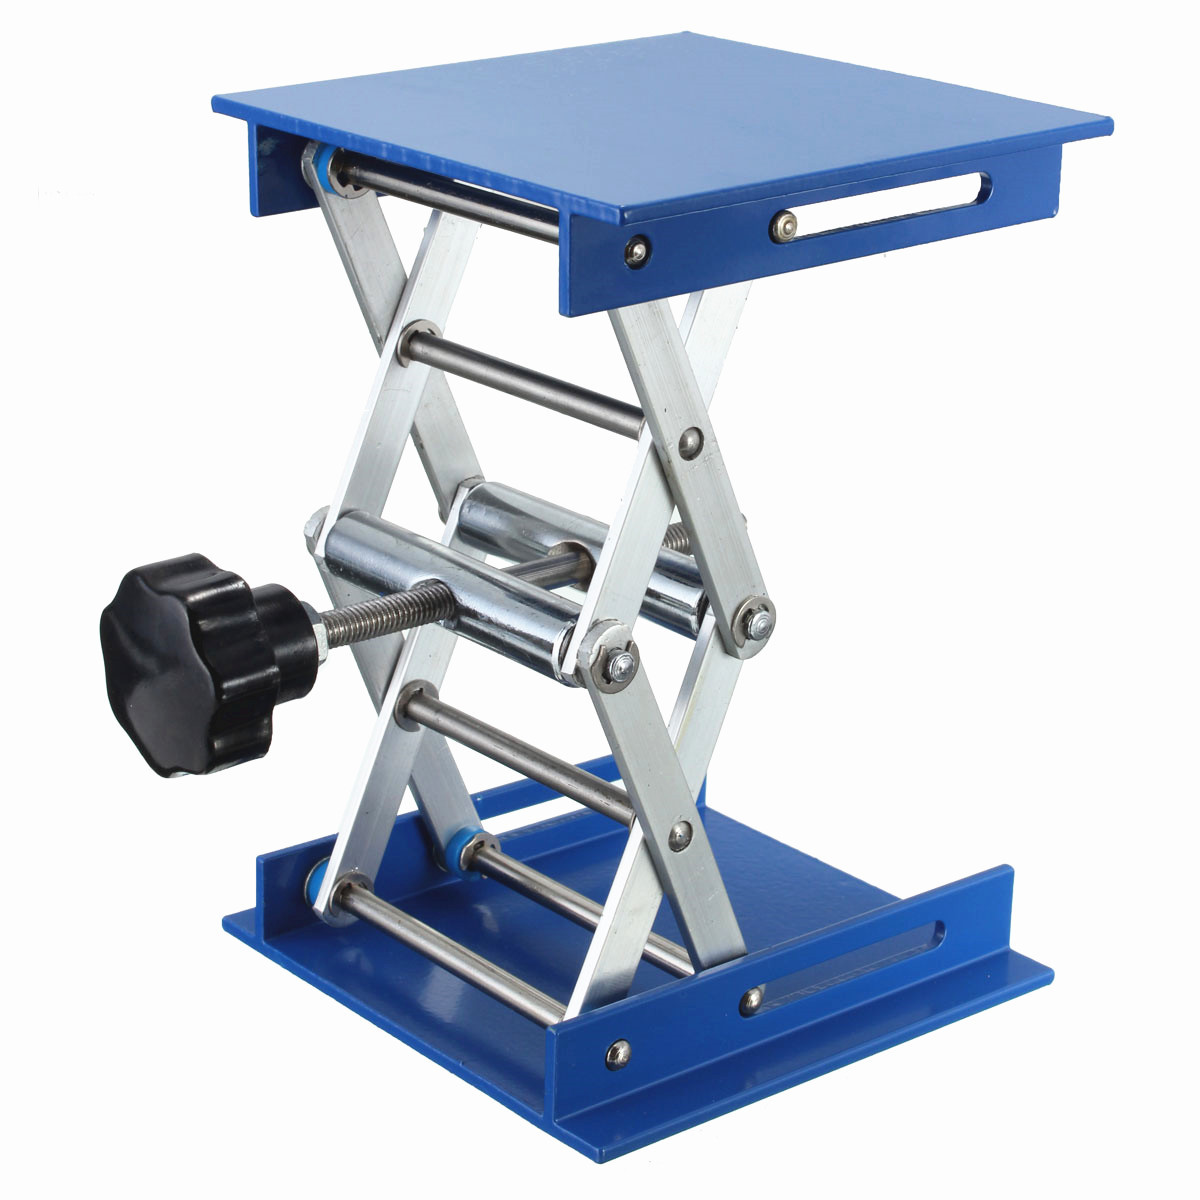 4×4 inch Lab Lifting Platforms Stand Rack Scissor Lab Lifting Aluminum Oxide Jack Lift - visiocology.com - Texas